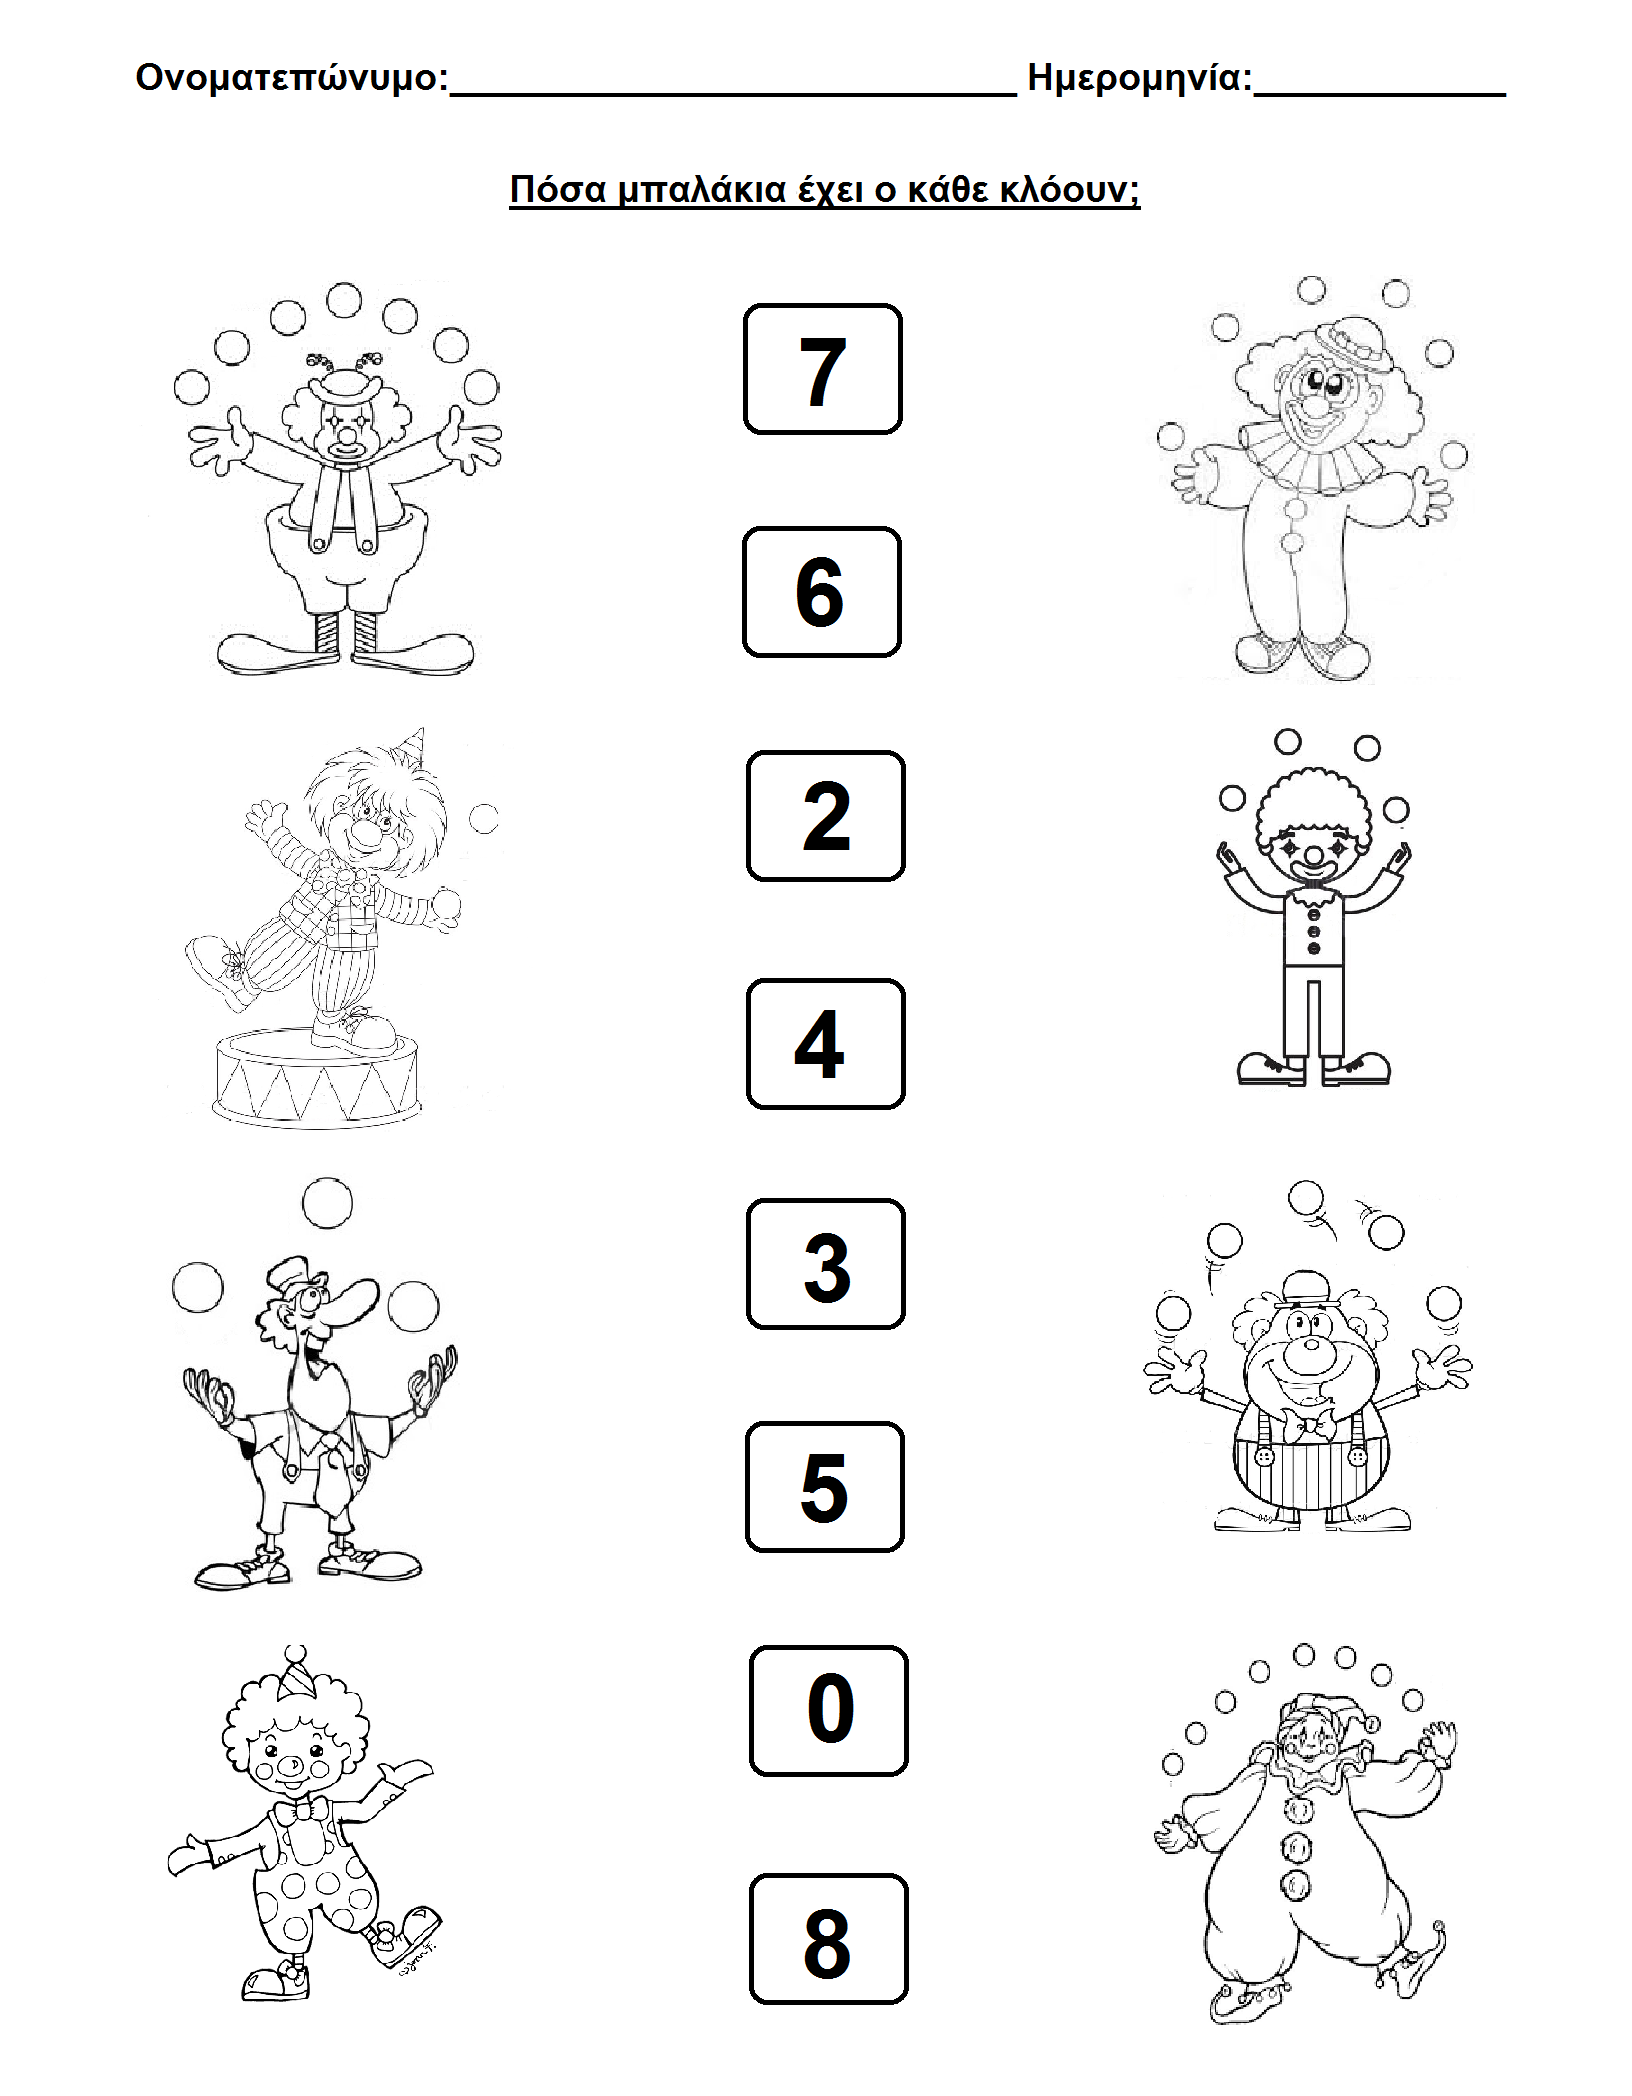 Pin By Liat Goldenstein On Ari8moi Sto Nhpiagwgeio Numbers Kindergarden Coloring Worksheets For Kindergarten Printables Free Kids Kindergarten Worksheets [ 2096 x 1632 Pixel ]